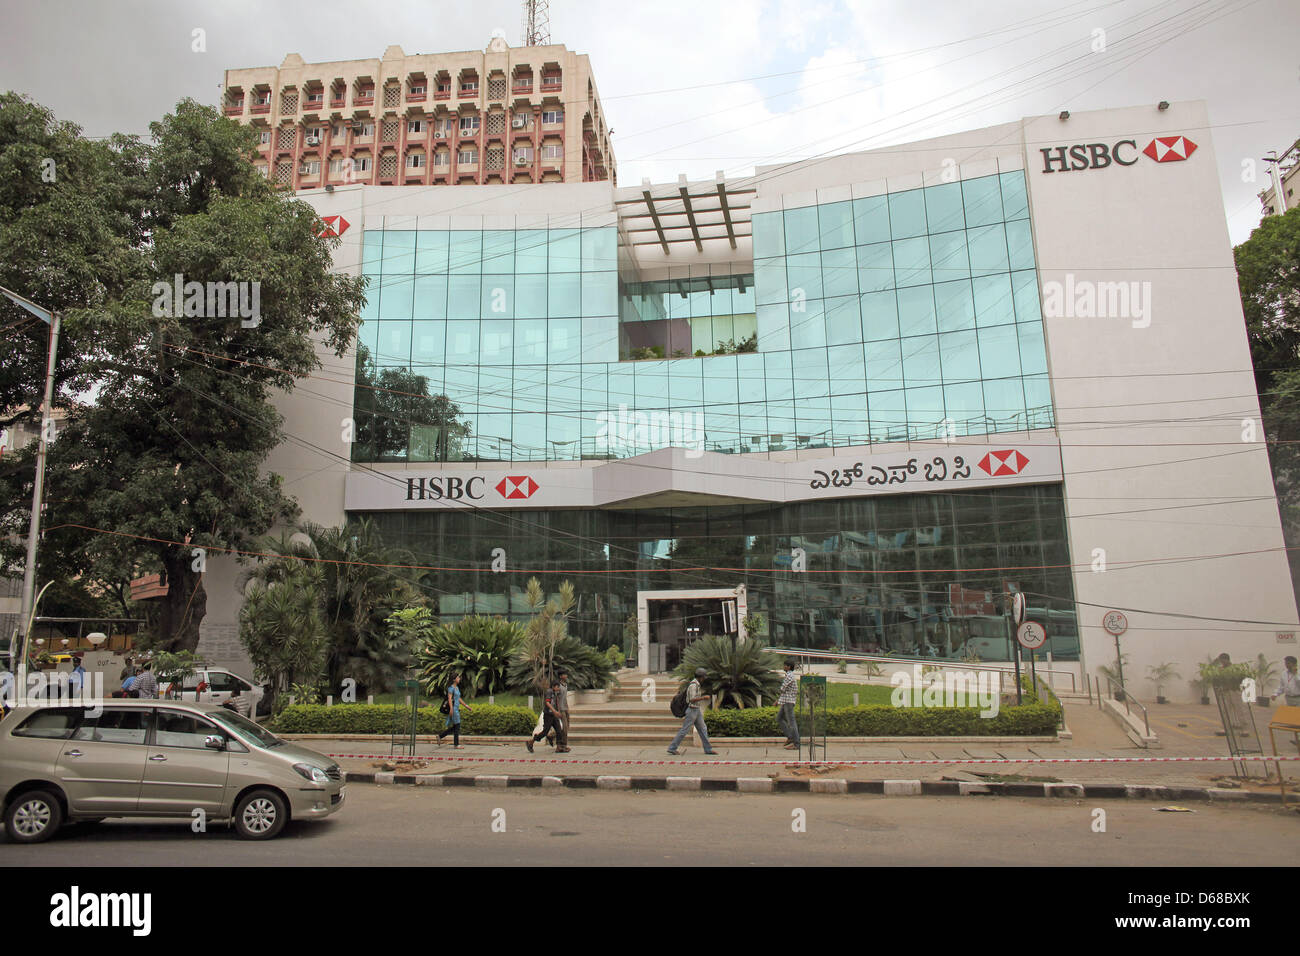 A branch of the British bank HSBC is pictured in Bangalore